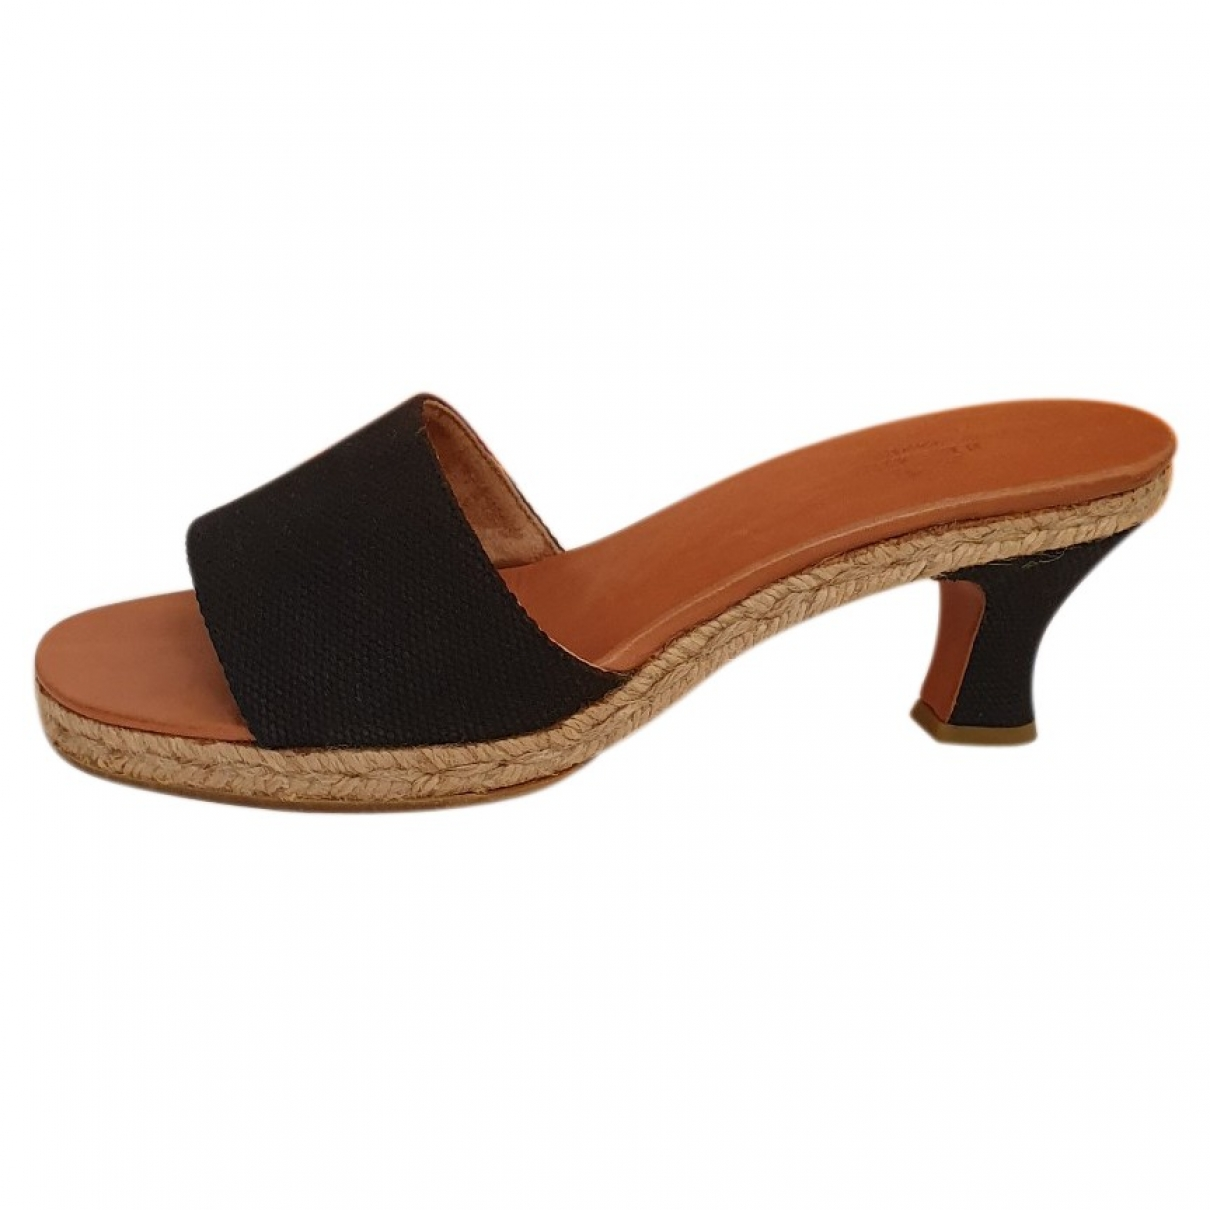 Hermès \N Black Cloth Sandals for Women 39 EU